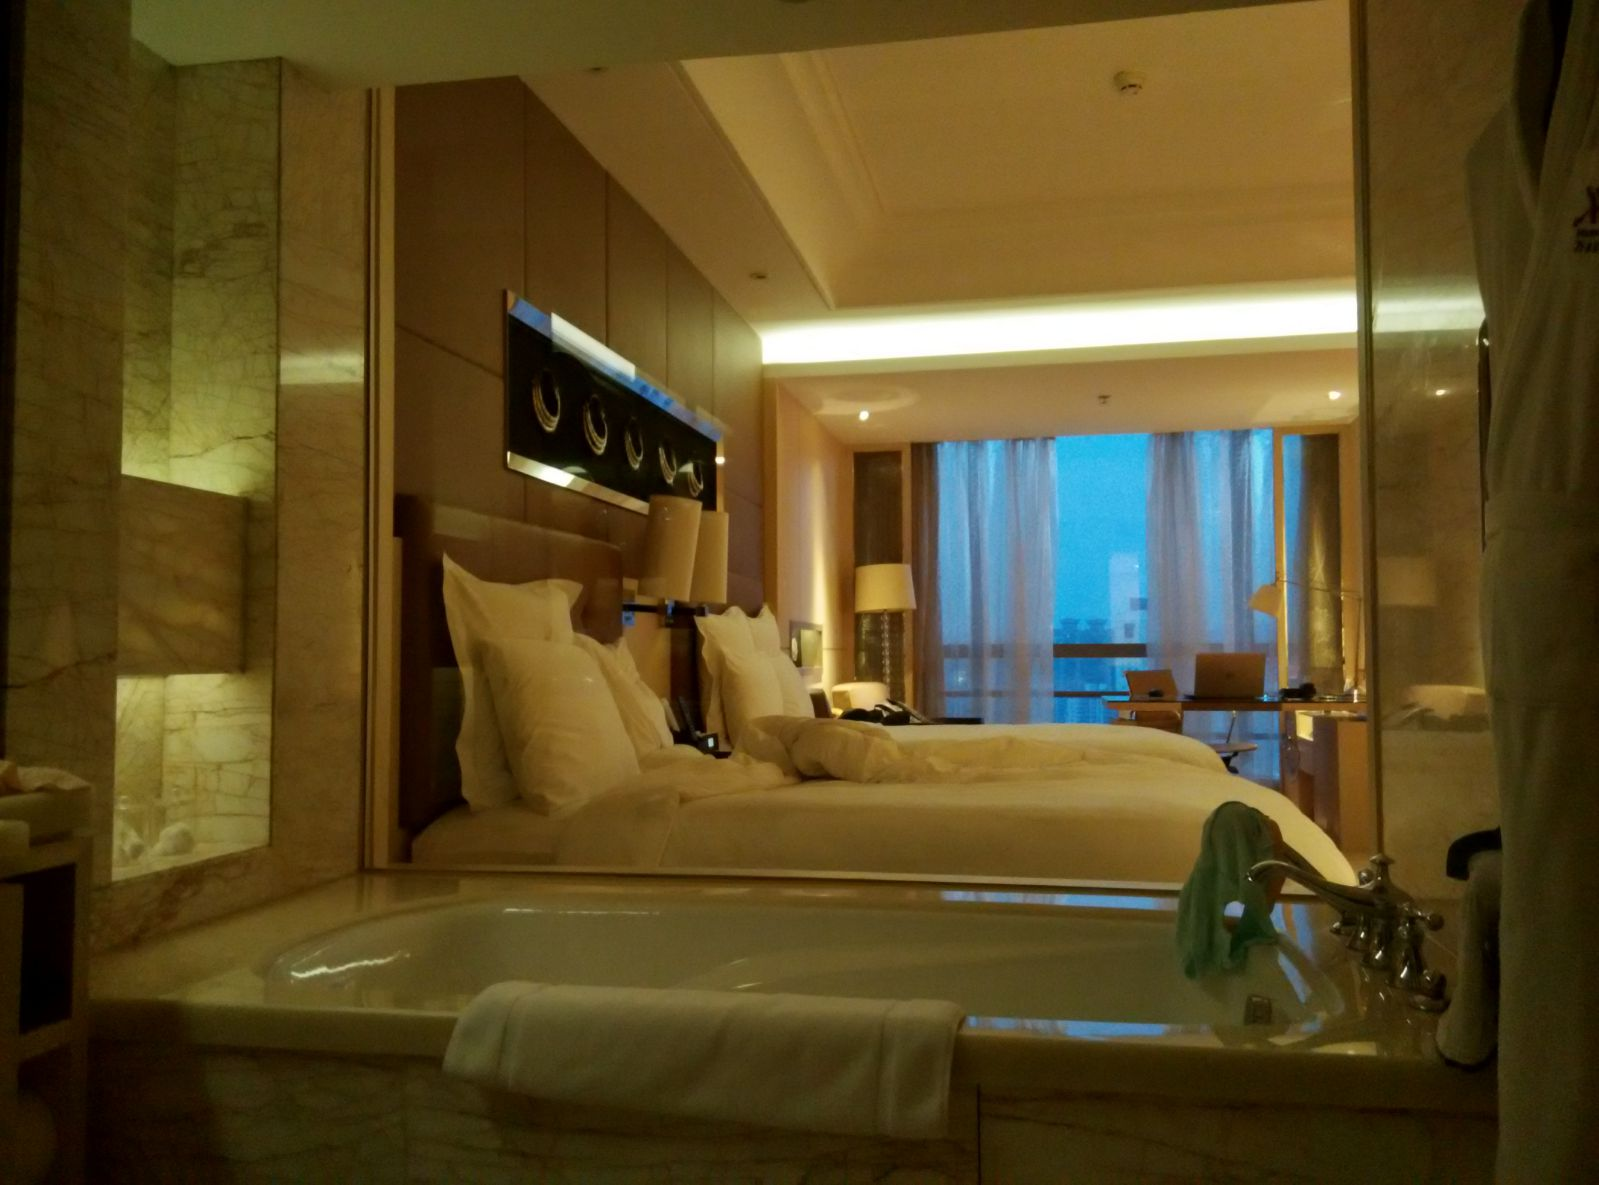 guangzhou-marriott-tianhe-room-2